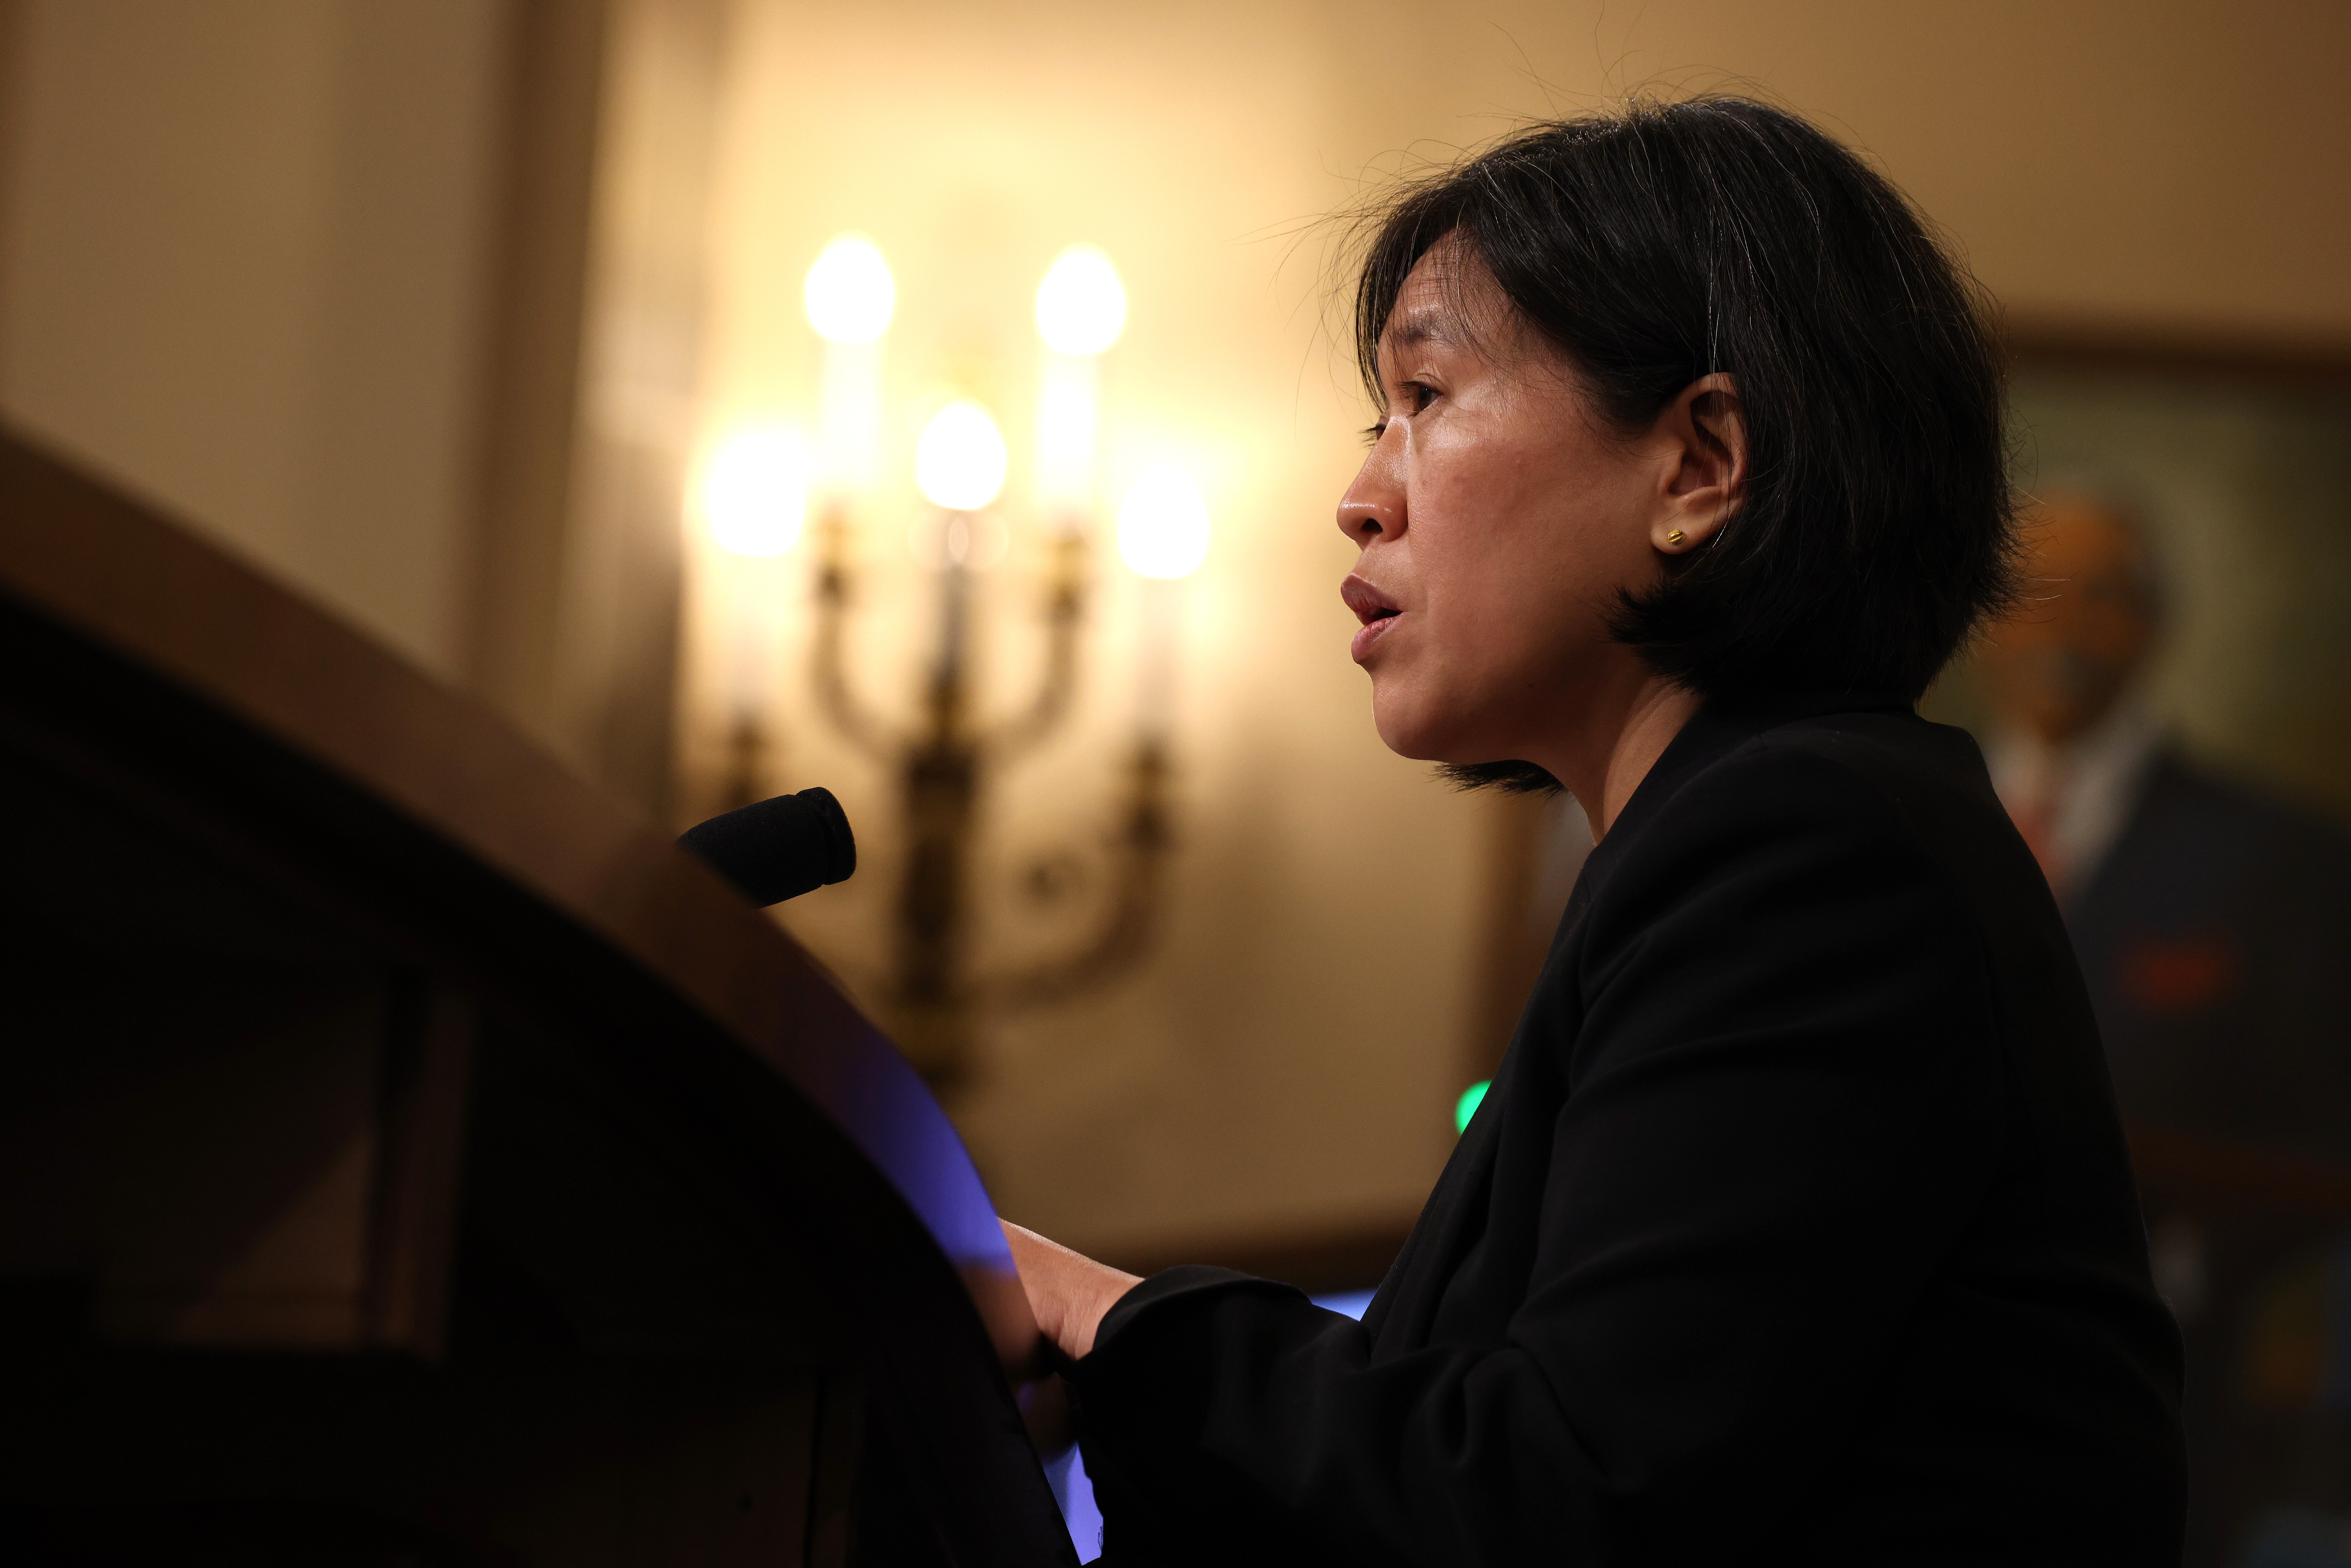 WASHINGTON, DC - MAY 13: U.S. Trade Representative Katherine Tai speaks during a hearing with the House Ways and Means committee at Capitol Hill on May 13, 2021 in Washington DC. Tai took questions from members about President Biden's 2021 trade policy agenda. (Photo by Anna Moneymaker/Getty Images)